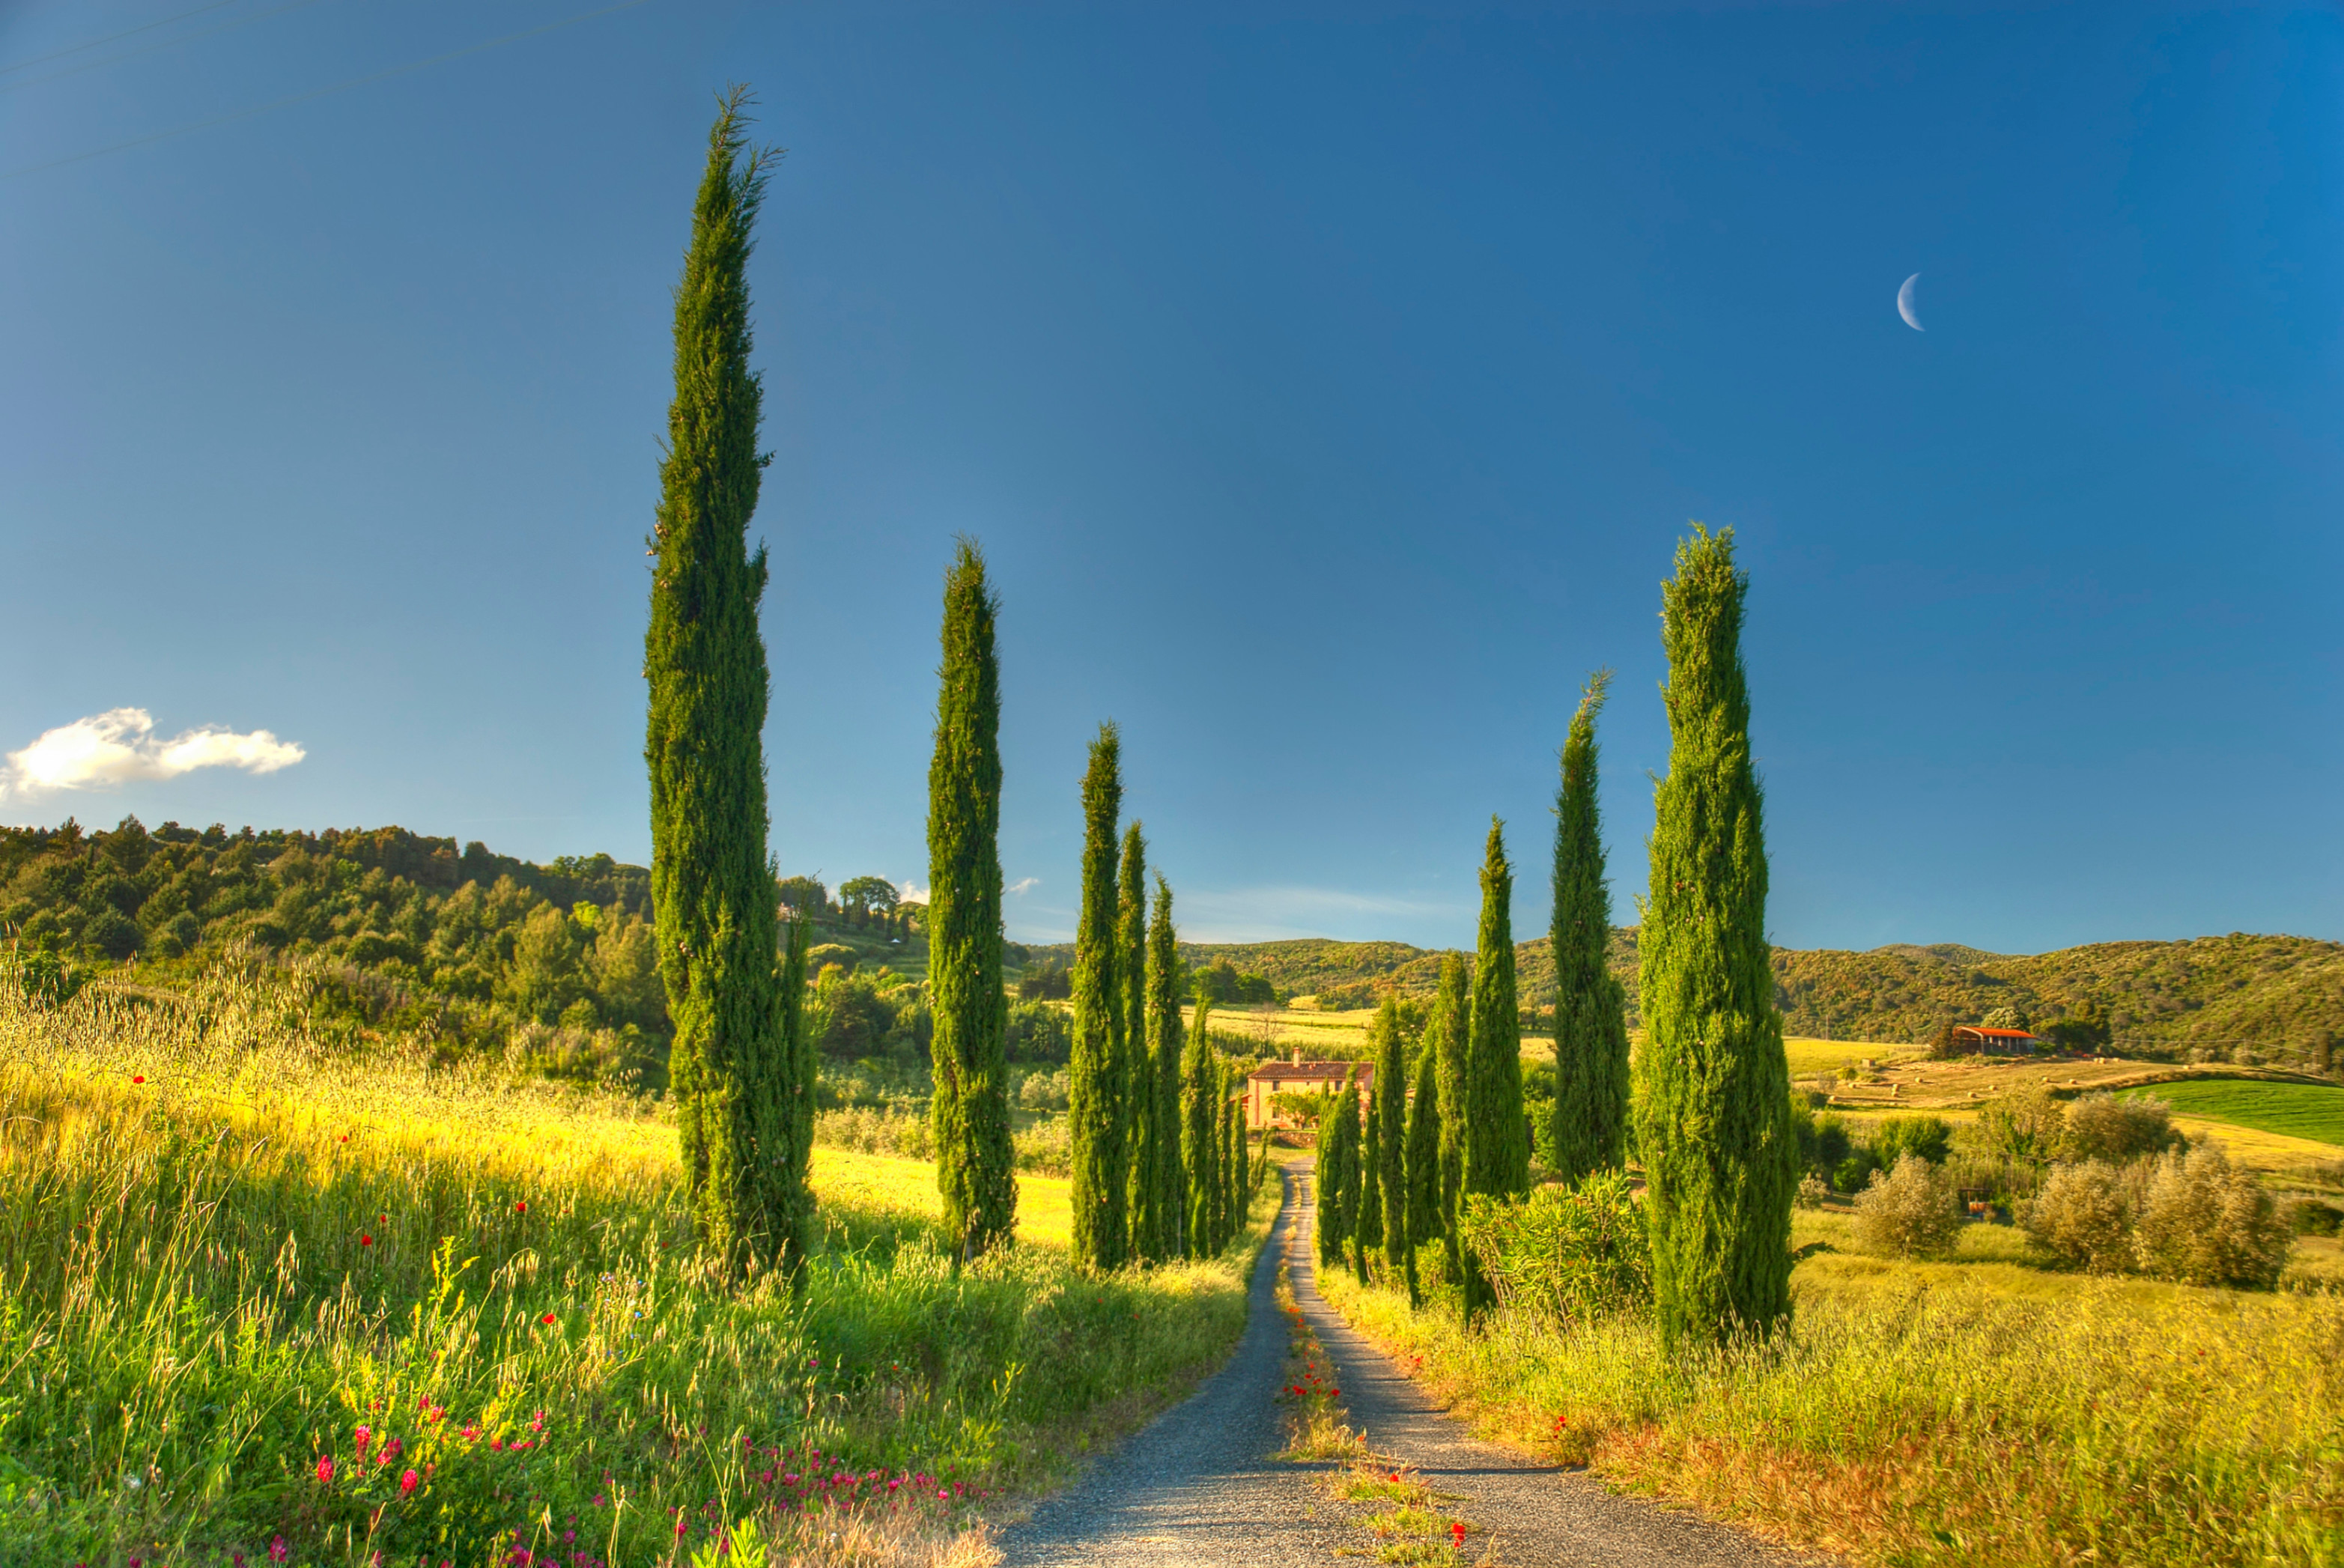 3130x2094 Landscapes - House Tuscany Cottage Country Villa Road Nature Wallpapers  Photos for HD 16:9